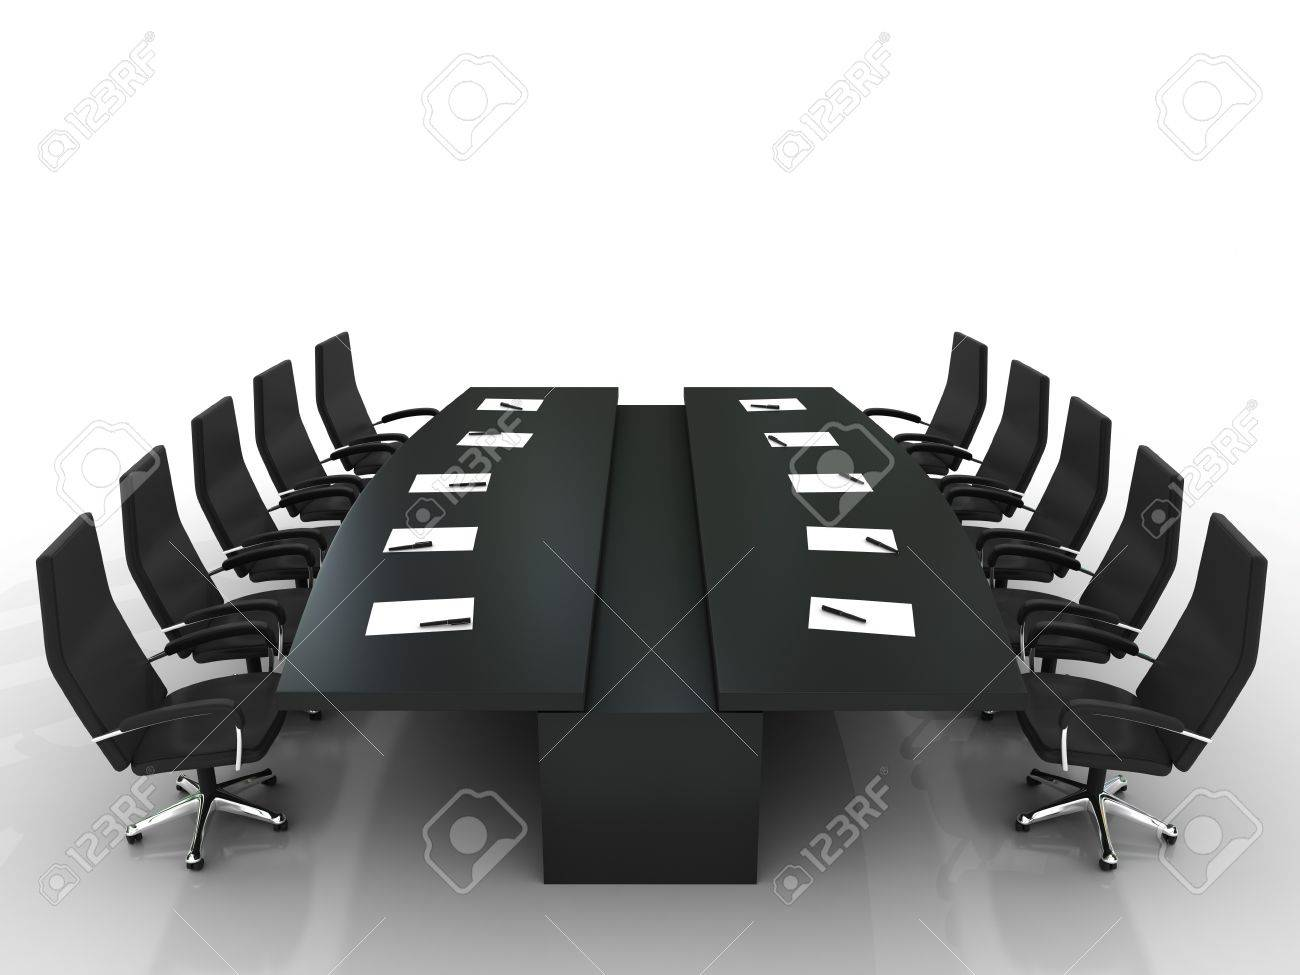 conference table and chairs with papers and pens isolated on white background Stock Photo - 7924746